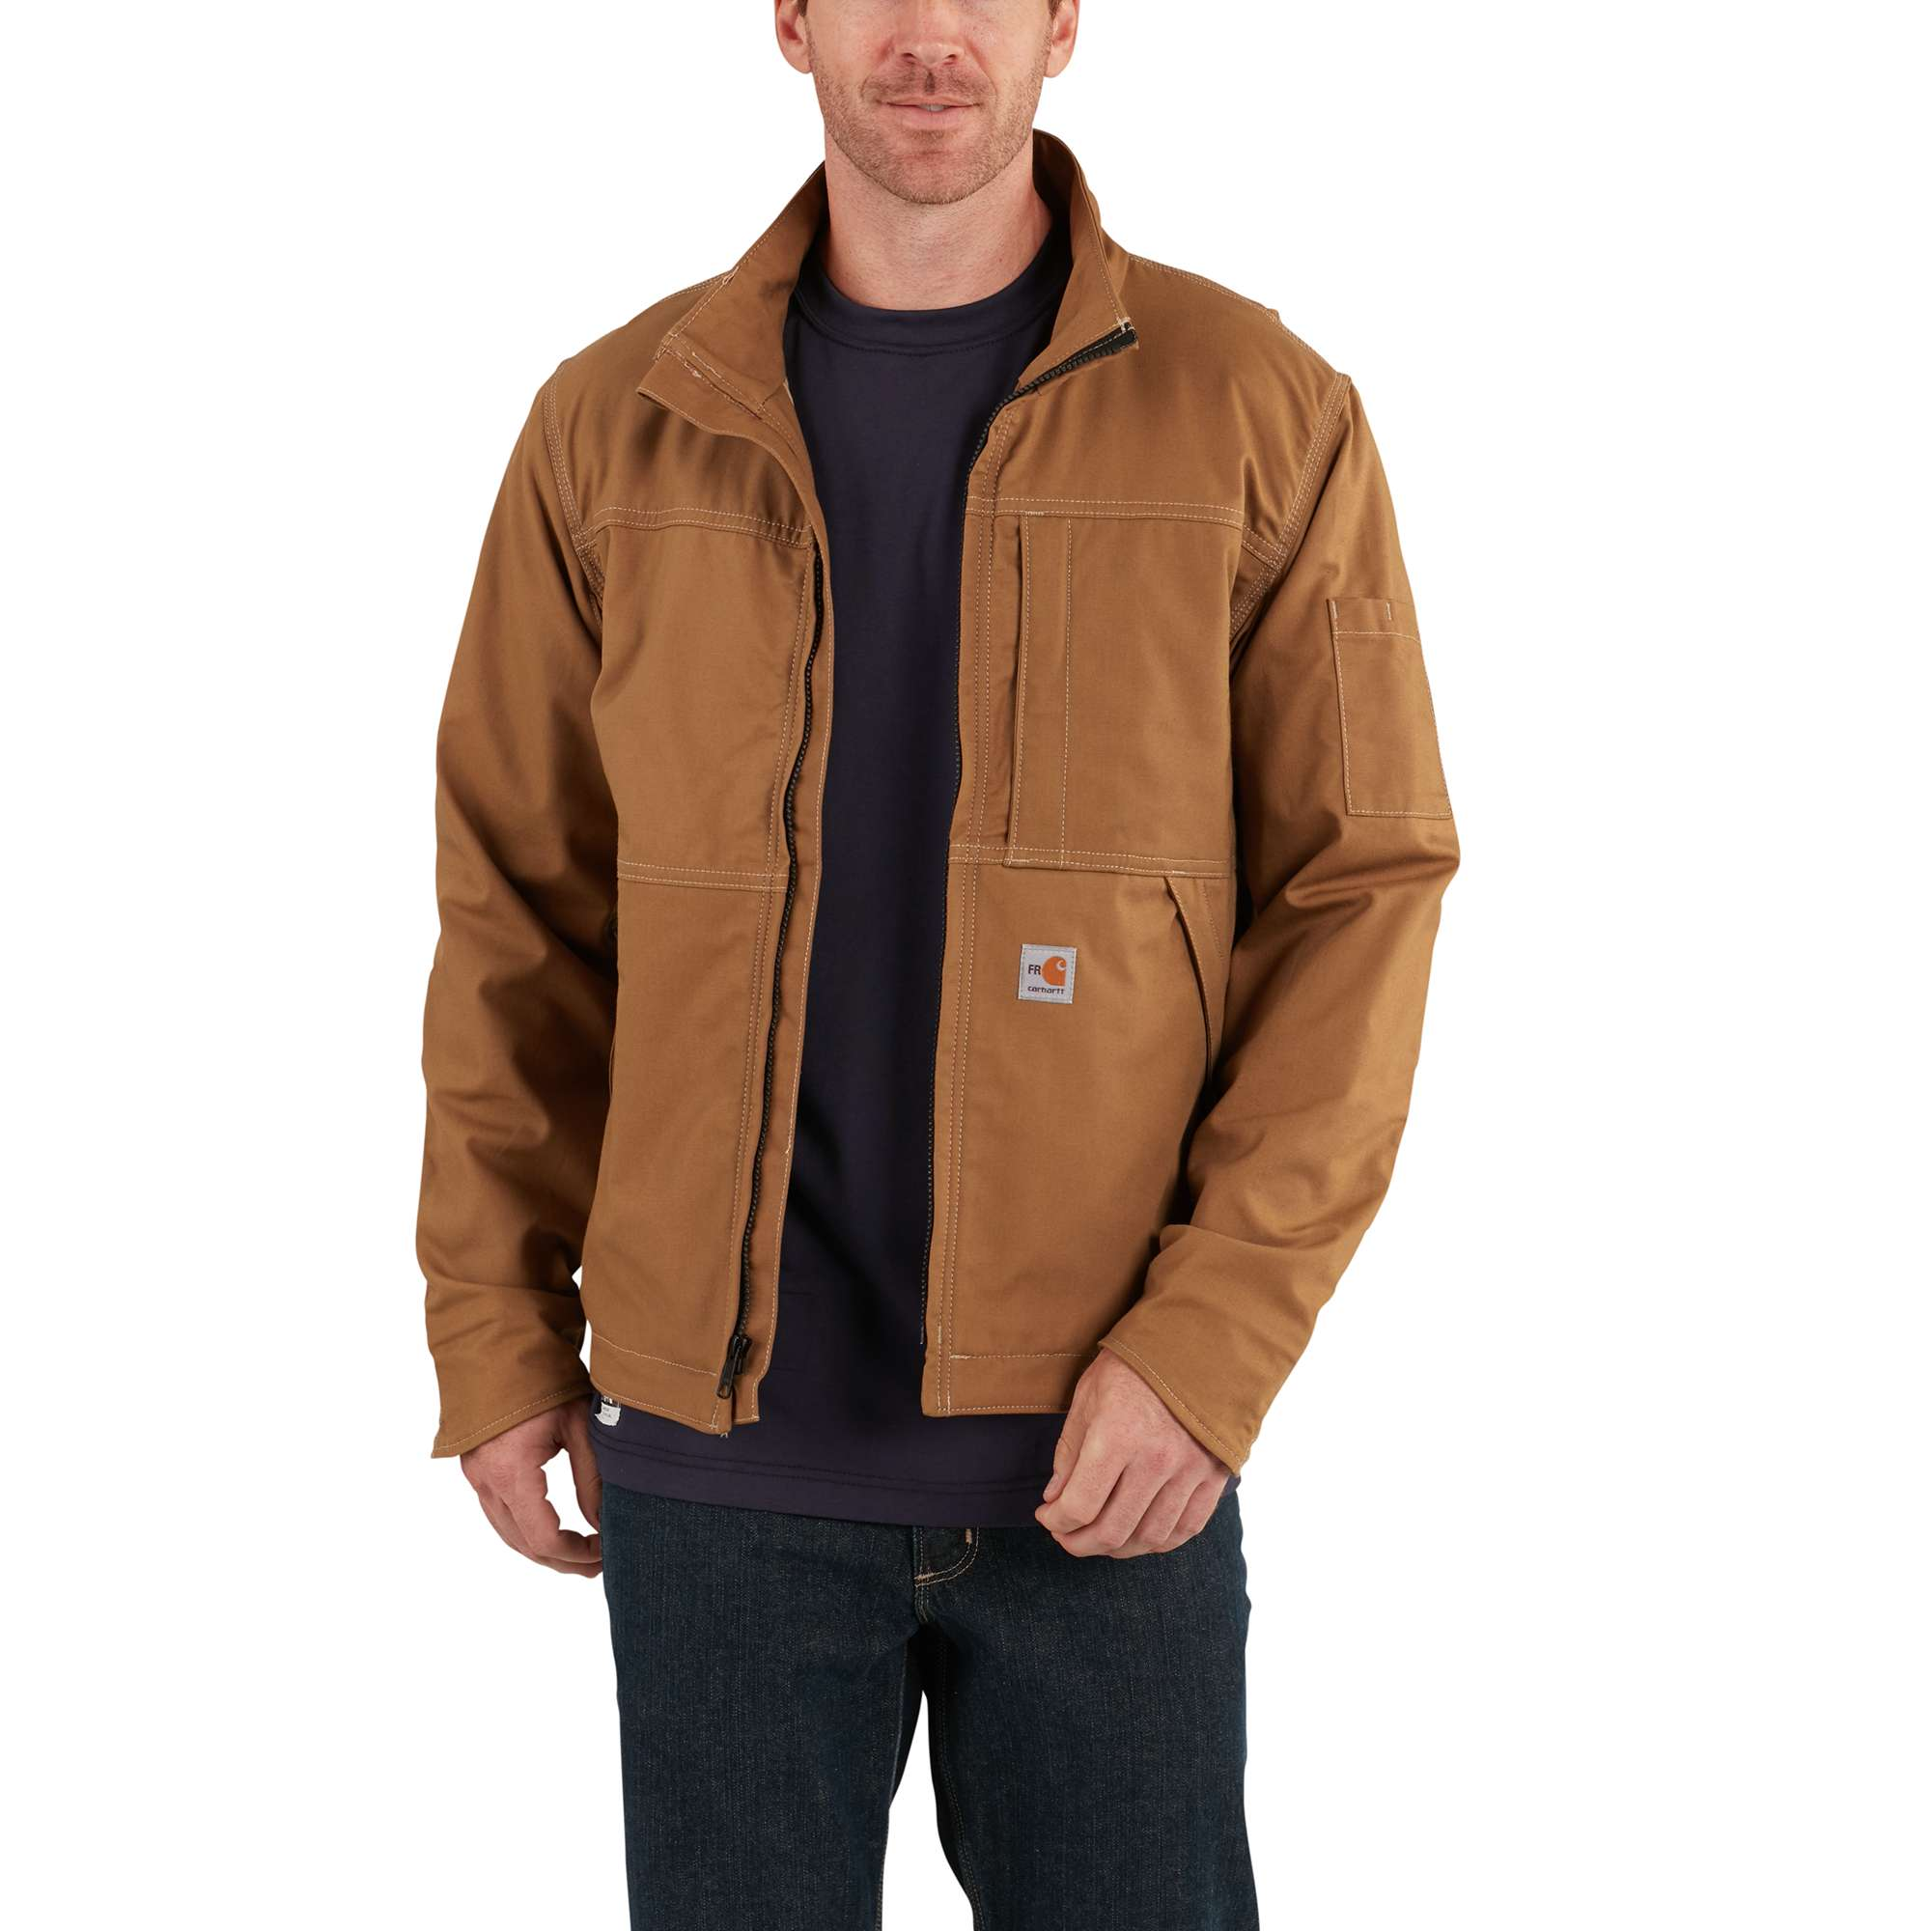 Carhartt Full Swing Quick Duck Flame-Resistant Jacket